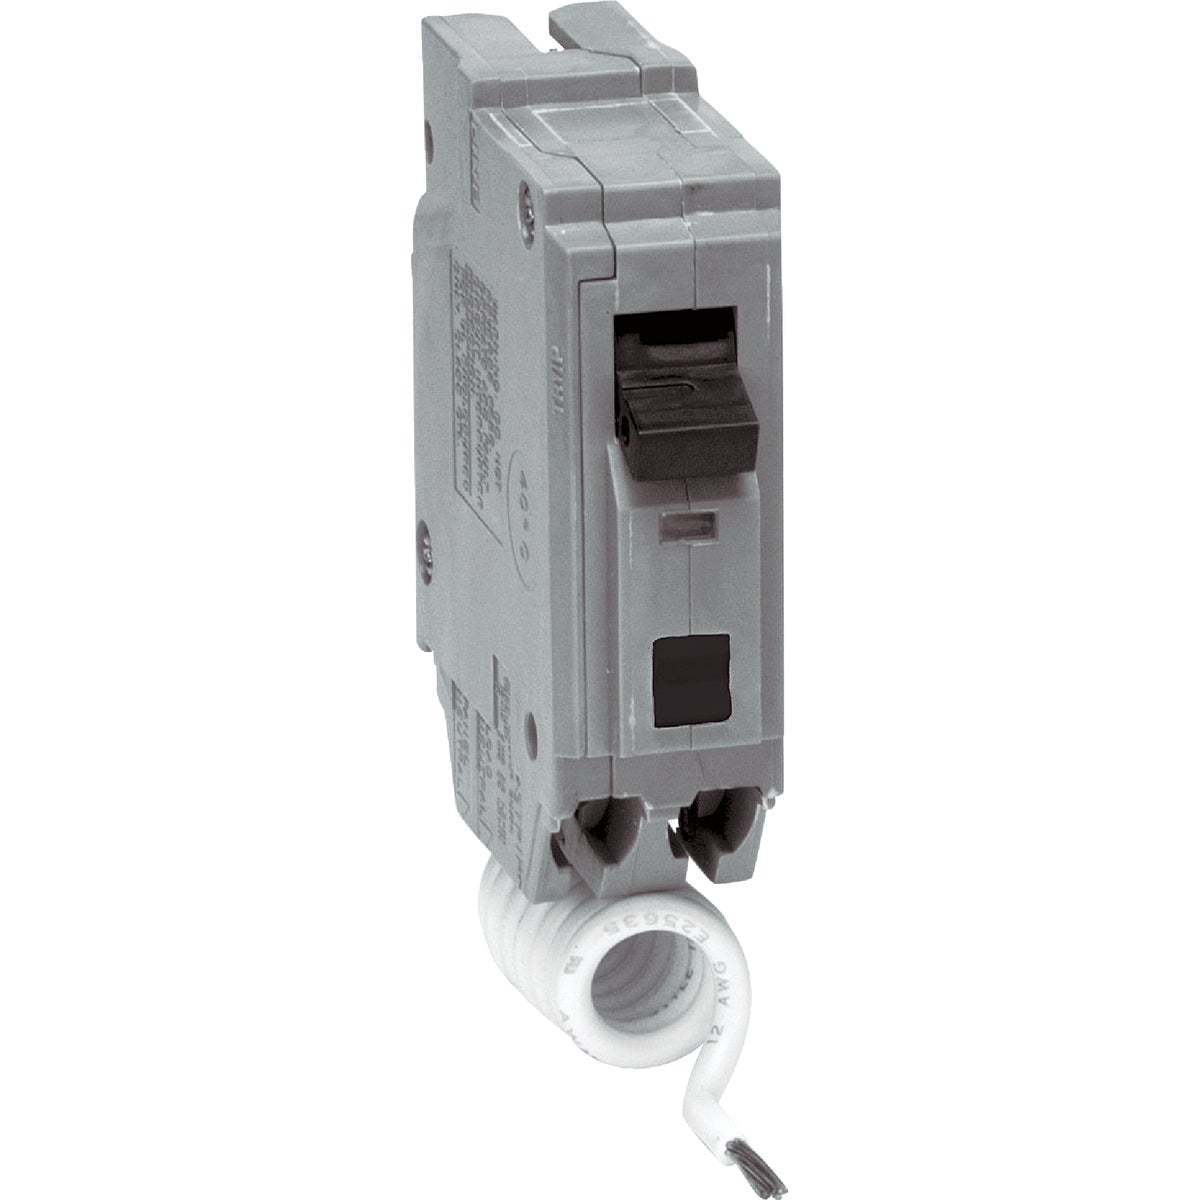 20A ARC FAULT BREAKER - THQL1120AFP2 by G E Industrial